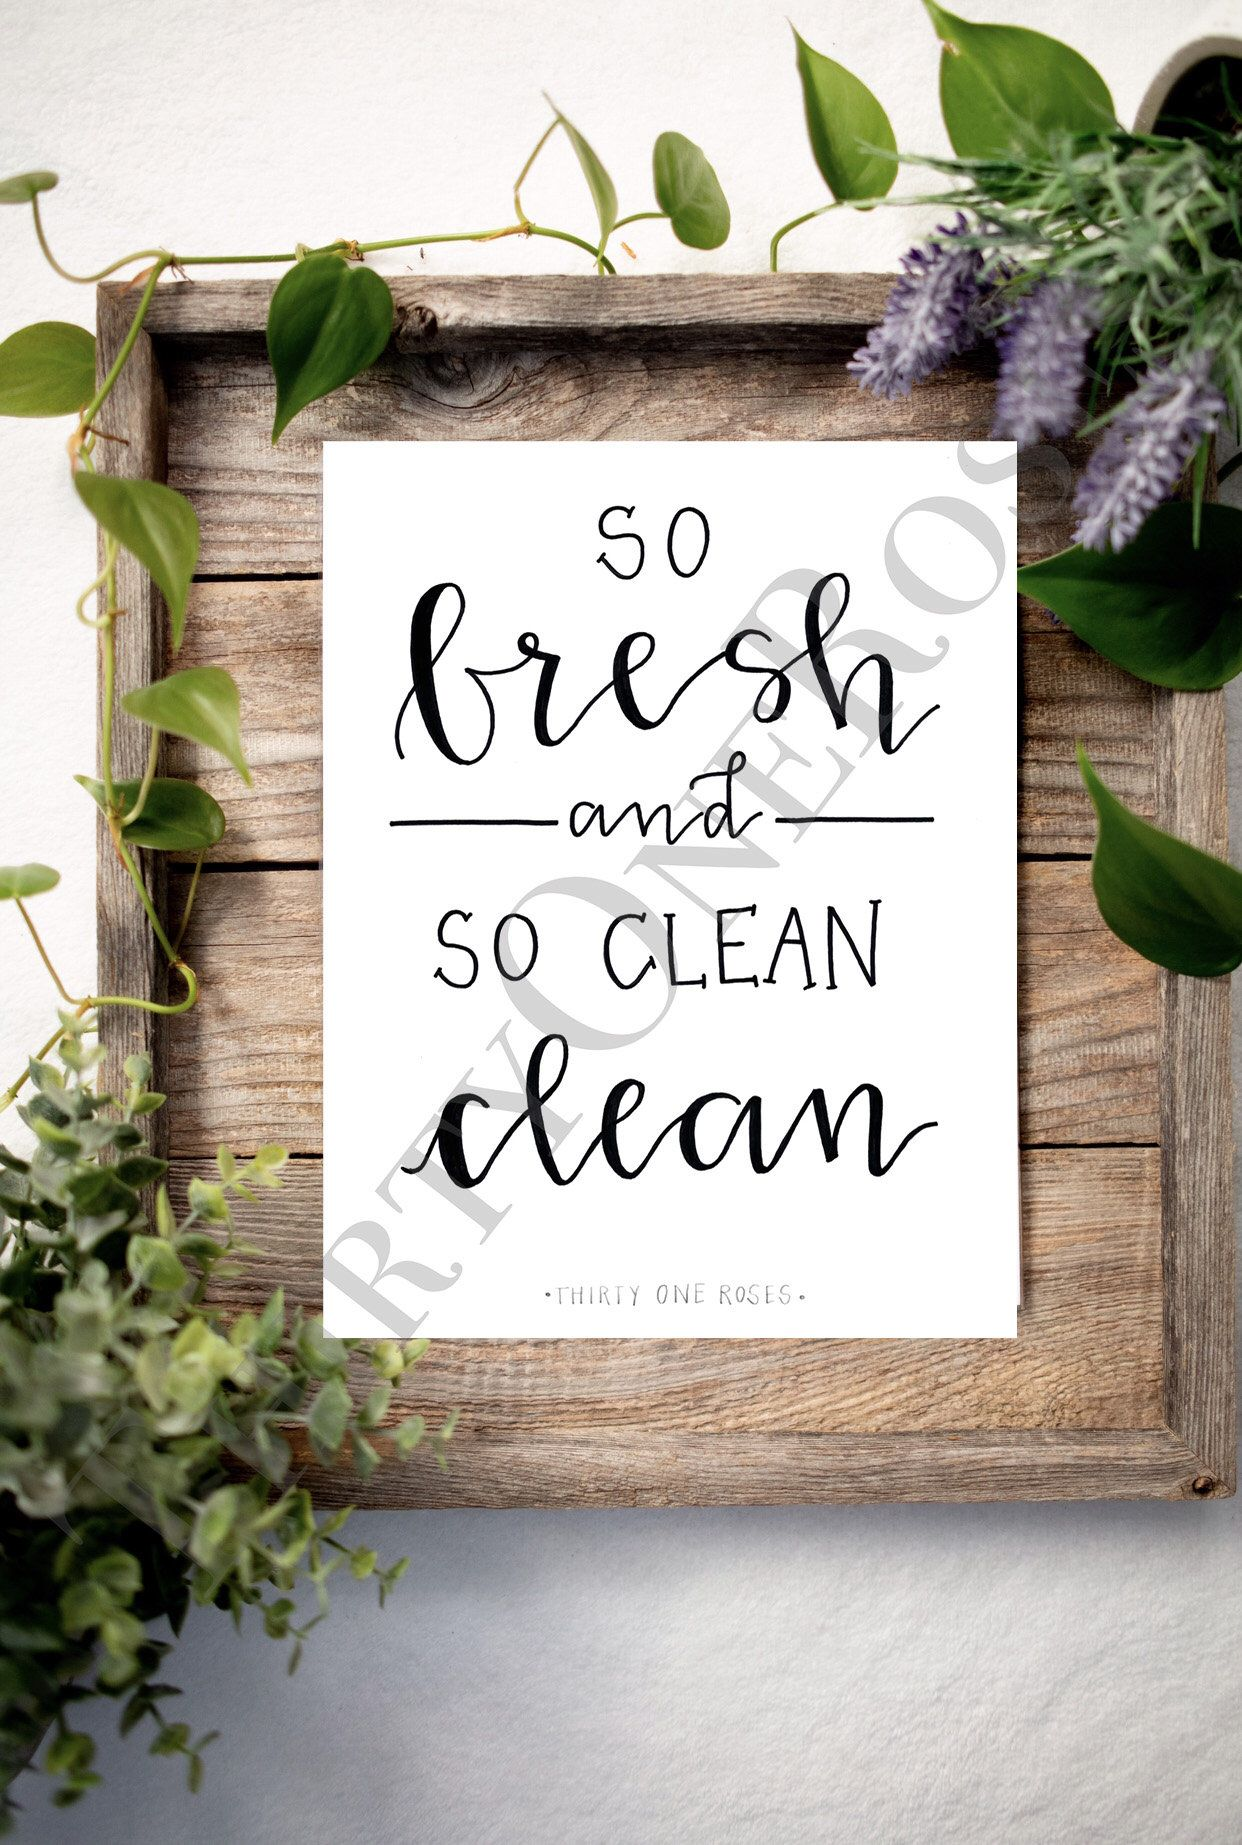 So Fresh So Clean Bathroom Or Laundry Decor Sign Print At Home Digital Download In 2020 Laundry Decor Fresh And Clean Hand Lettering